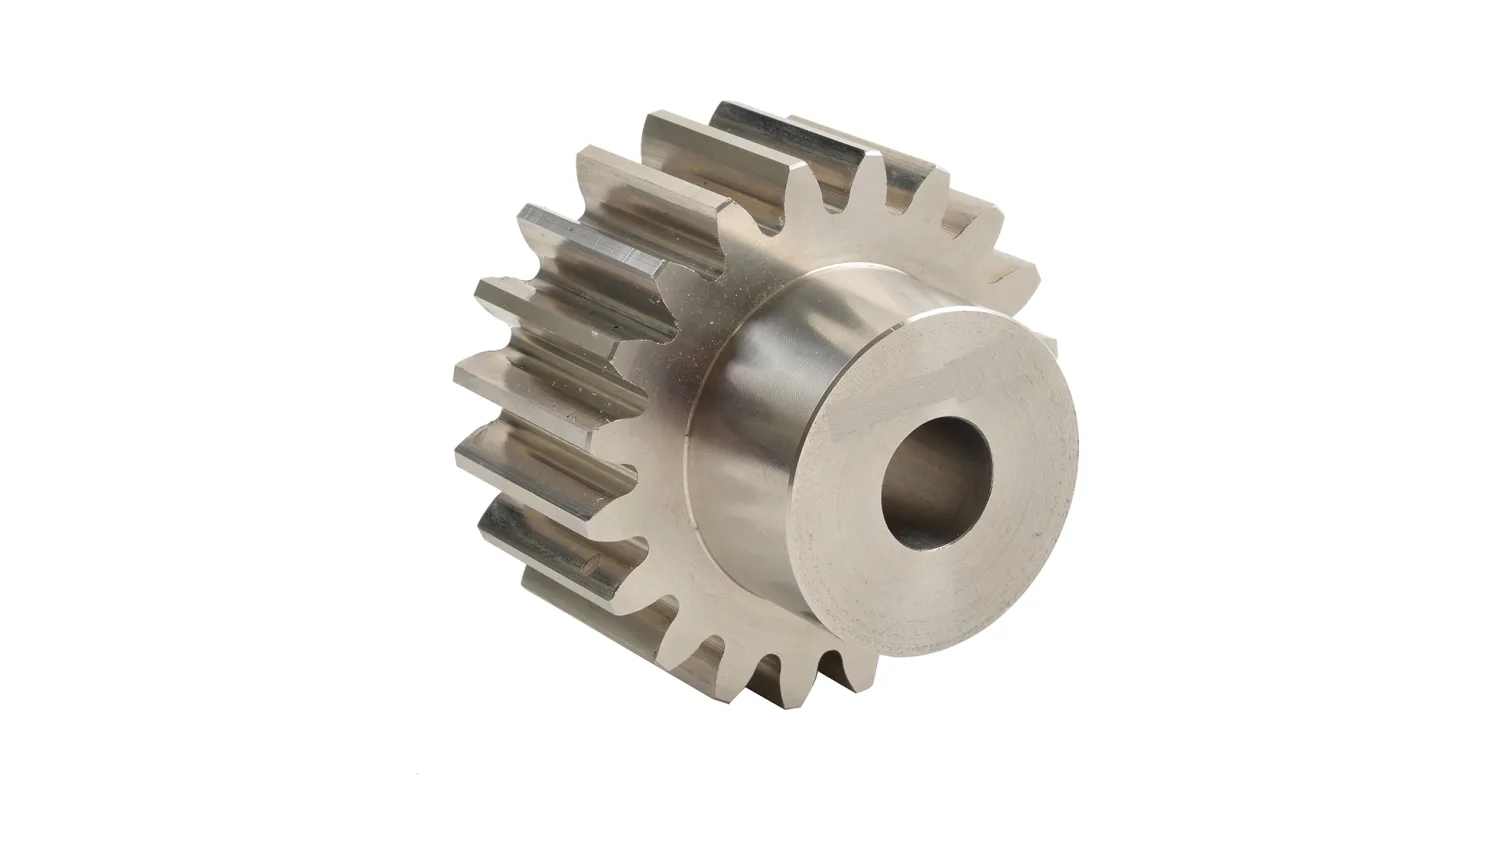 5-Mod-x-13-Tooth-Metric-Spur-Gear-in-Steel